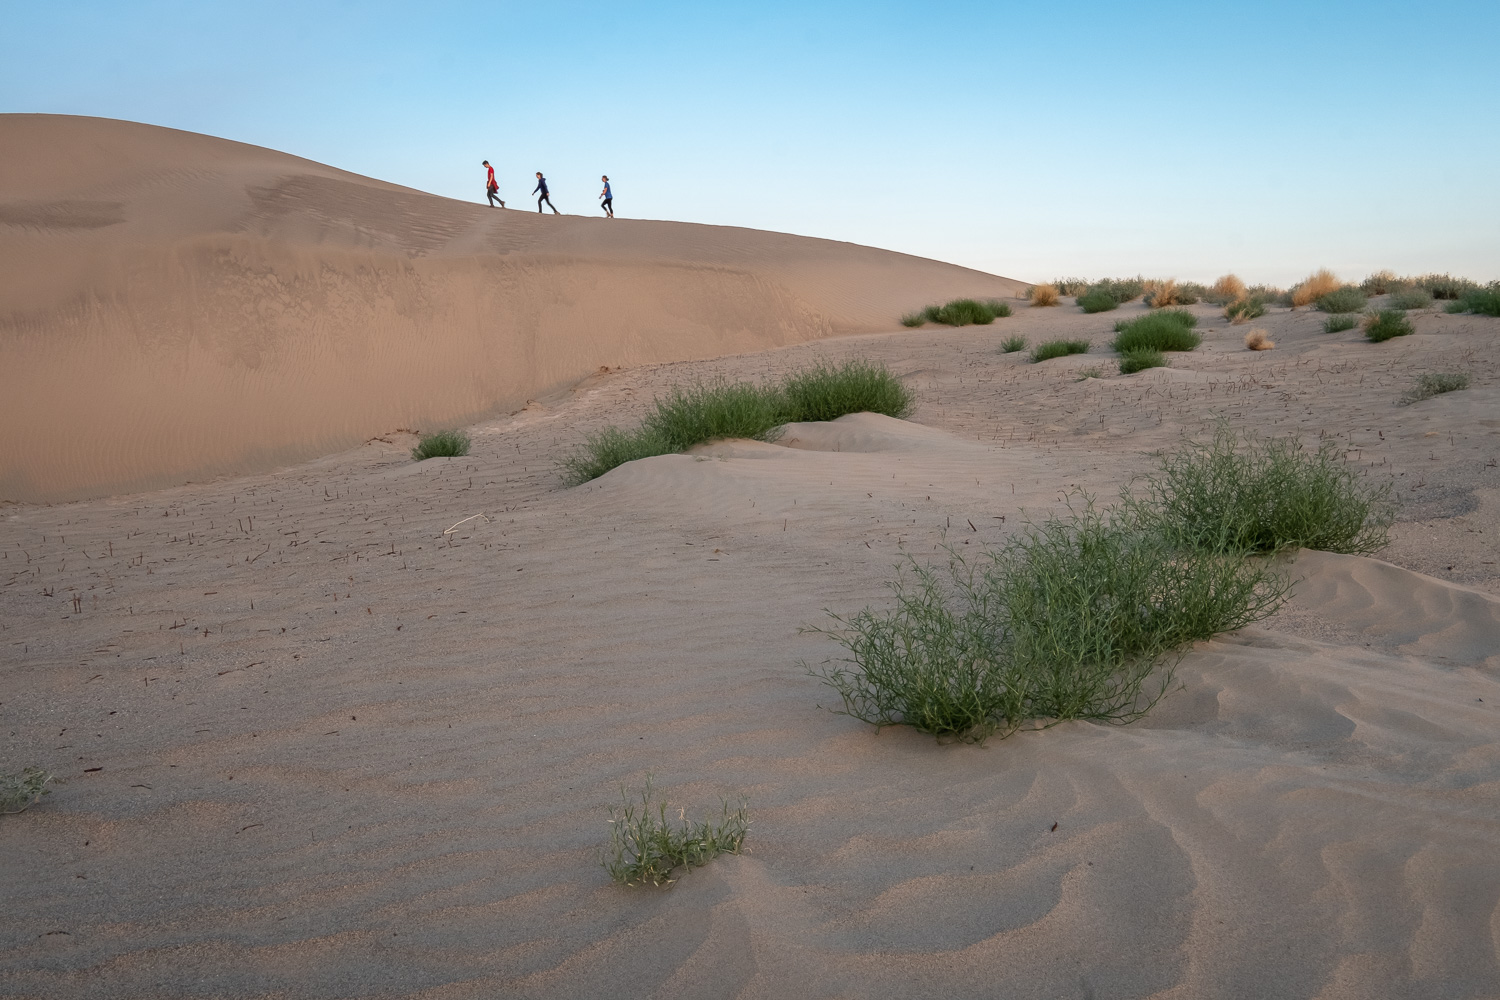 Sunrise at sand dunes in Hanford Reach National Monument